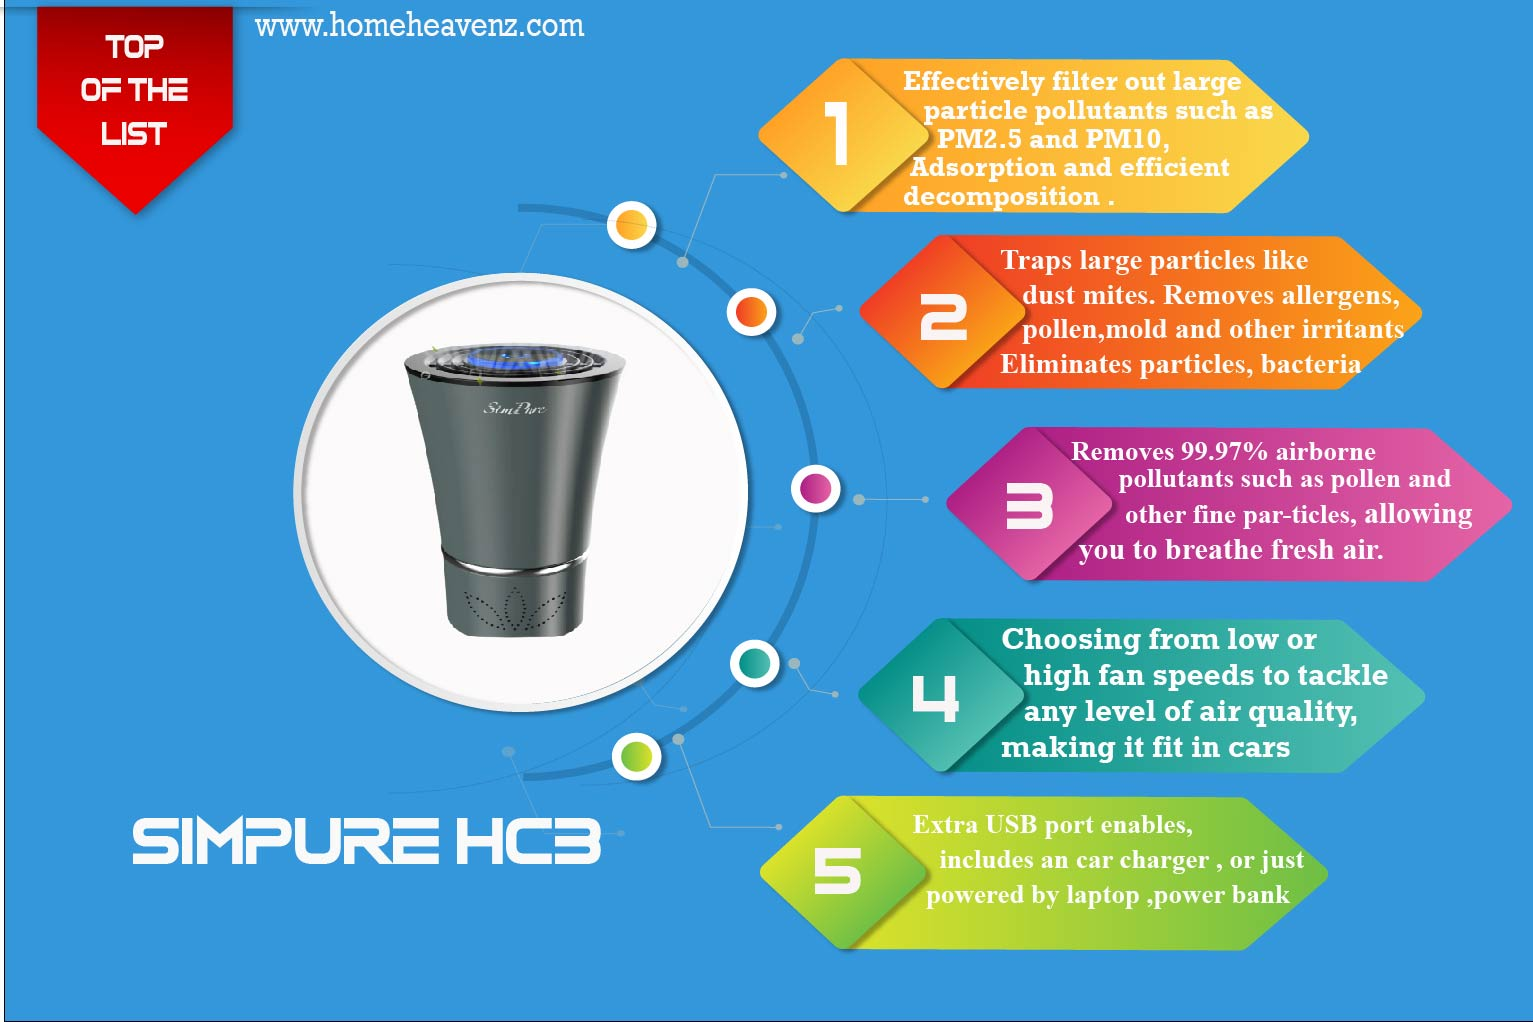 infographic-about-filtration-system-allergy removing-capability-and-fan-power-of-SimPure-HC3-360°–Best-Car-Air-Purifier-for-Smoke-2021-01